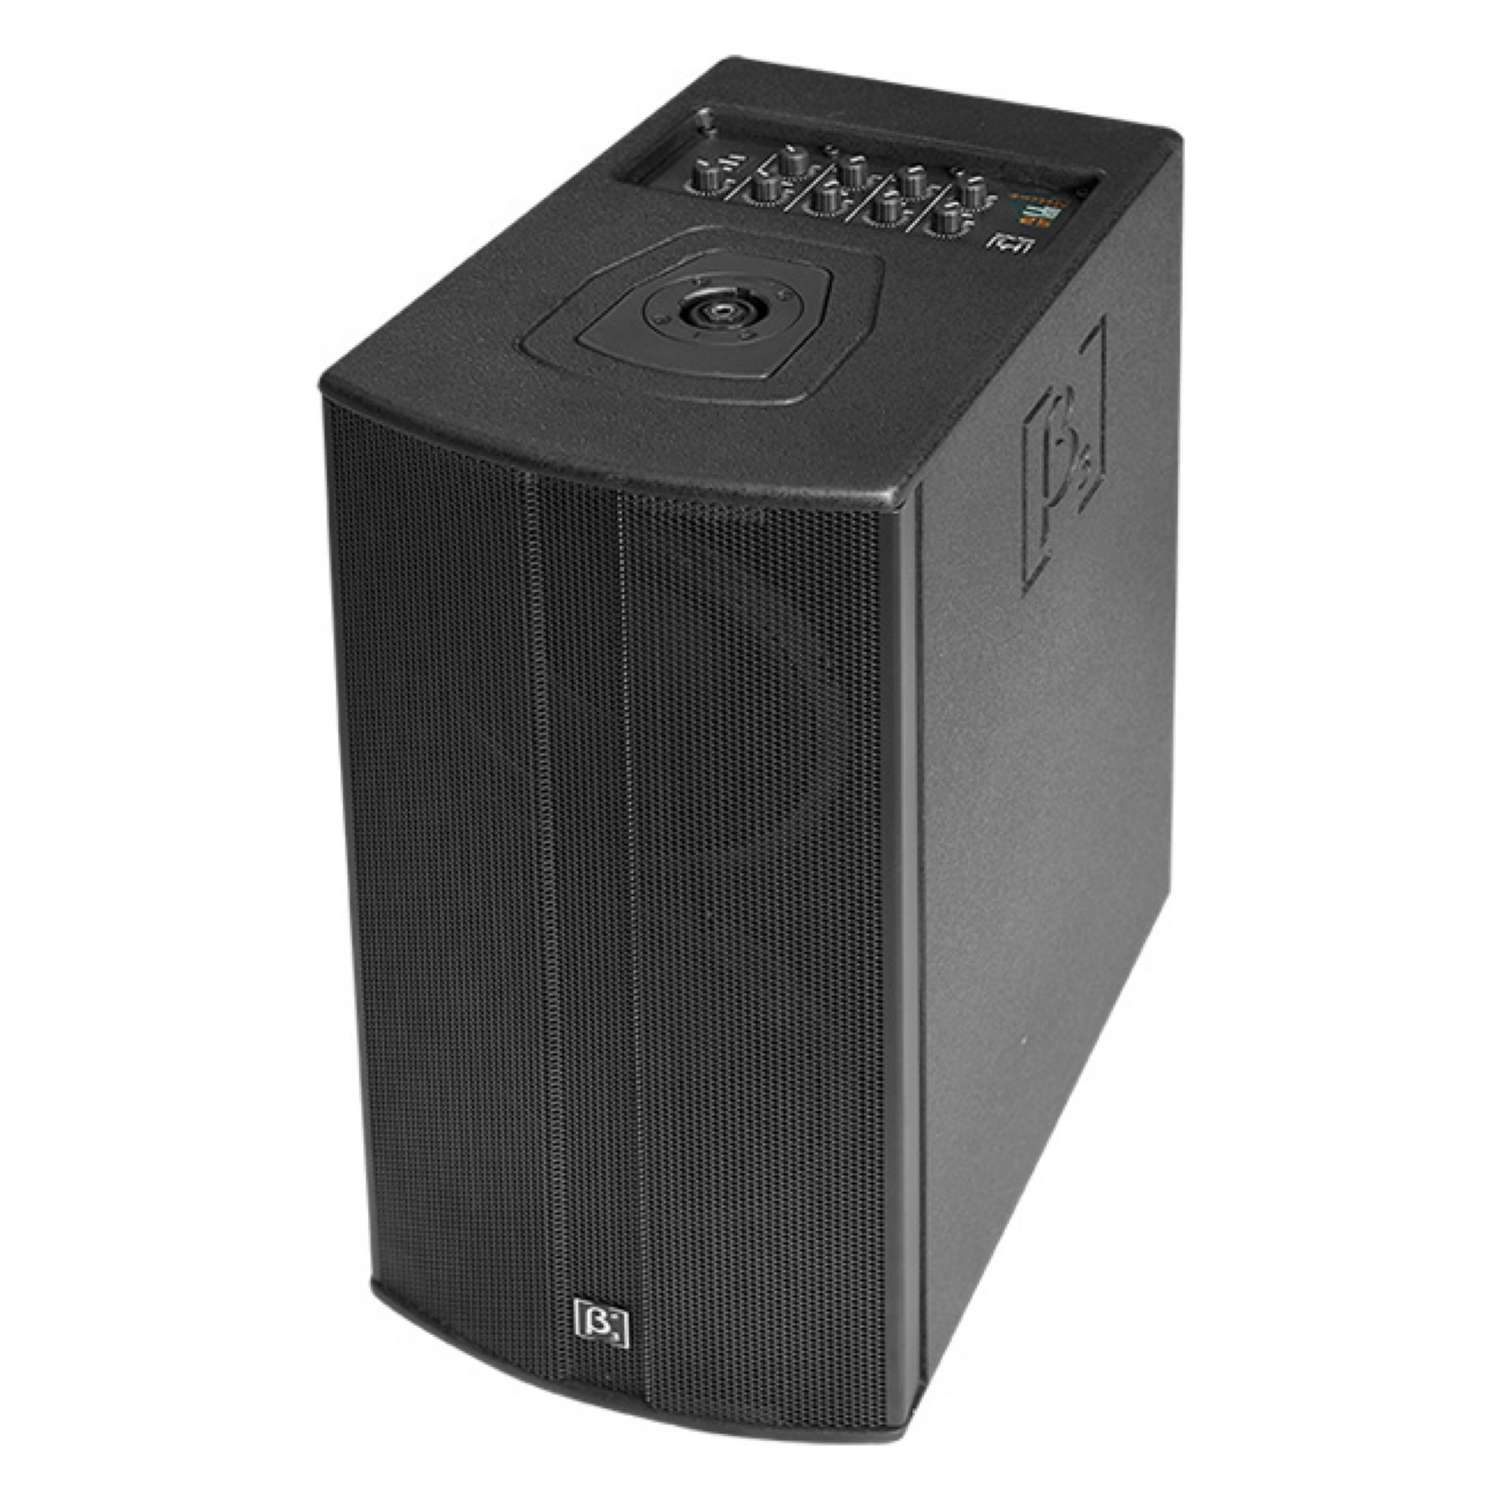 Beta 3 Meline S2-III 3-way Column Speaker System 4